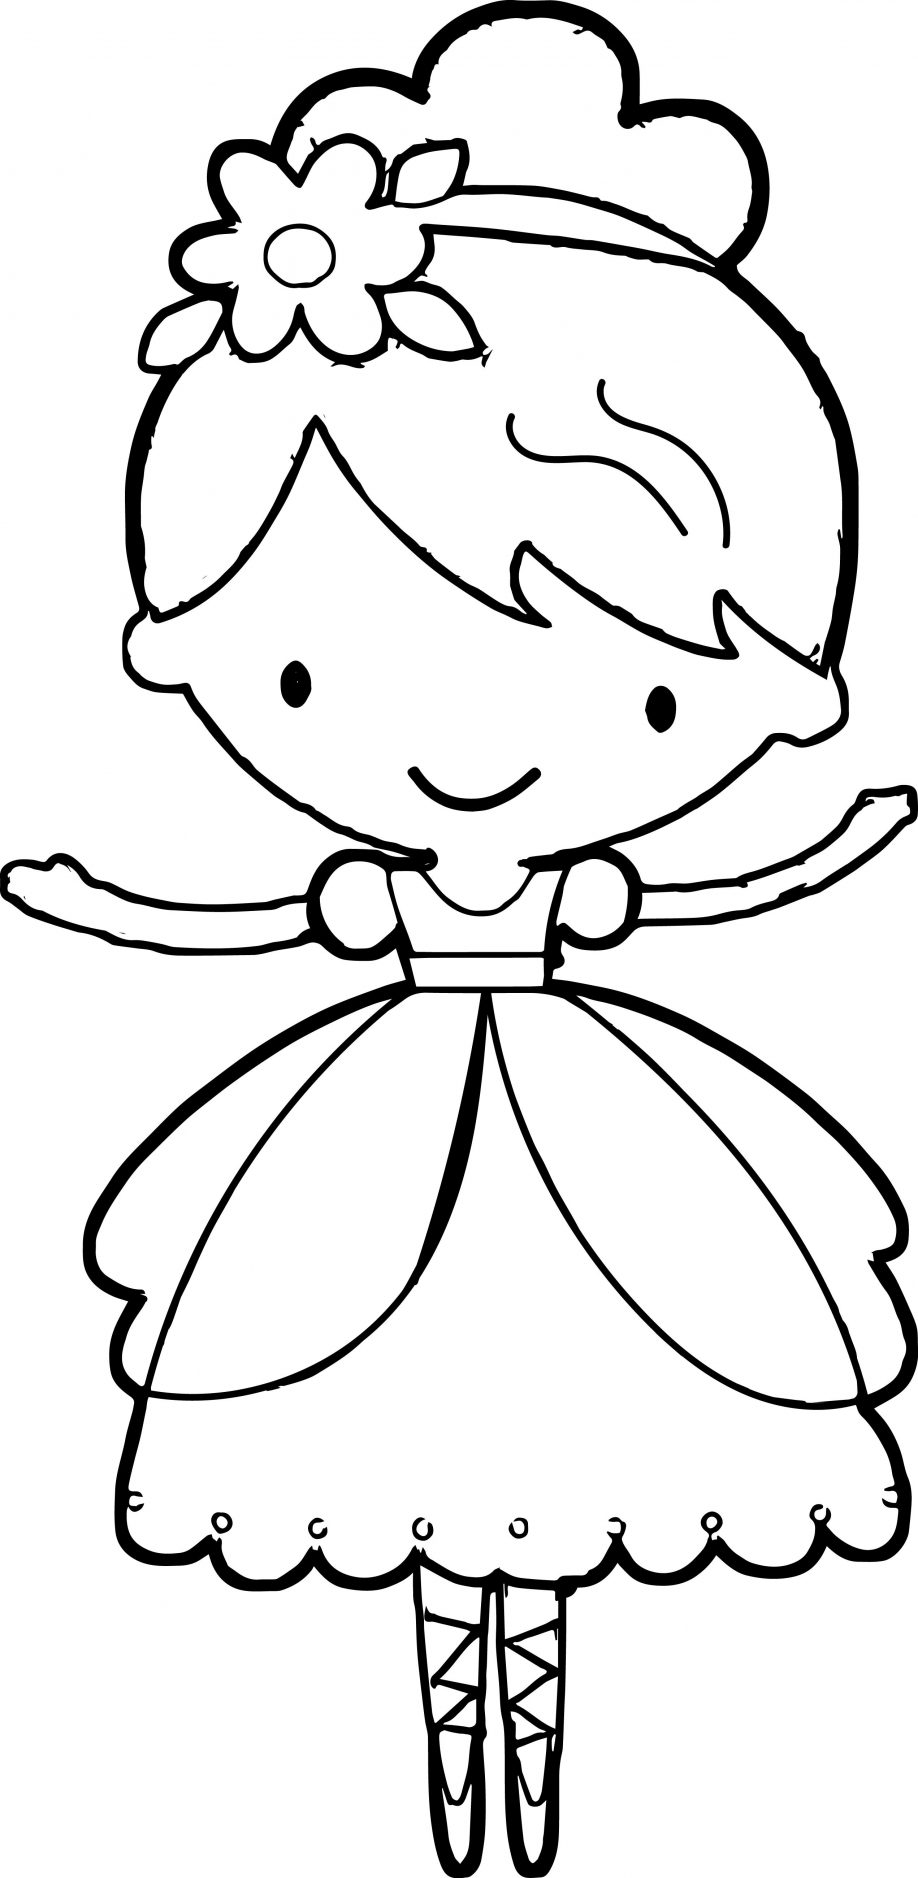 coloring pages ballet ballet coloring pages to download and print for free pages ballet coloring